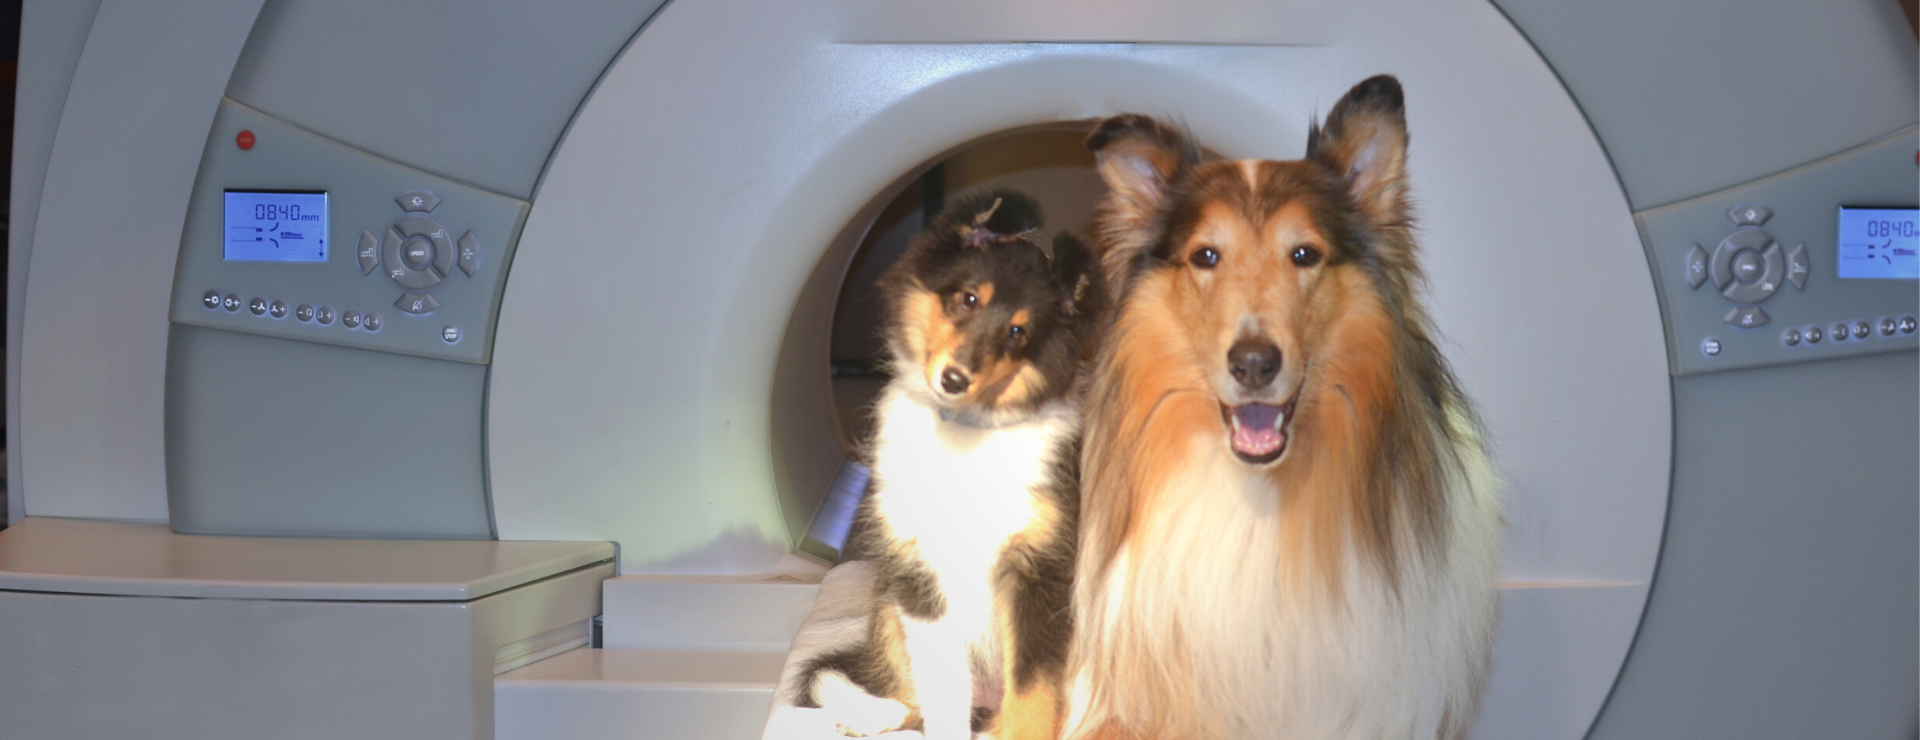 collie dog standing in front of a mri machine